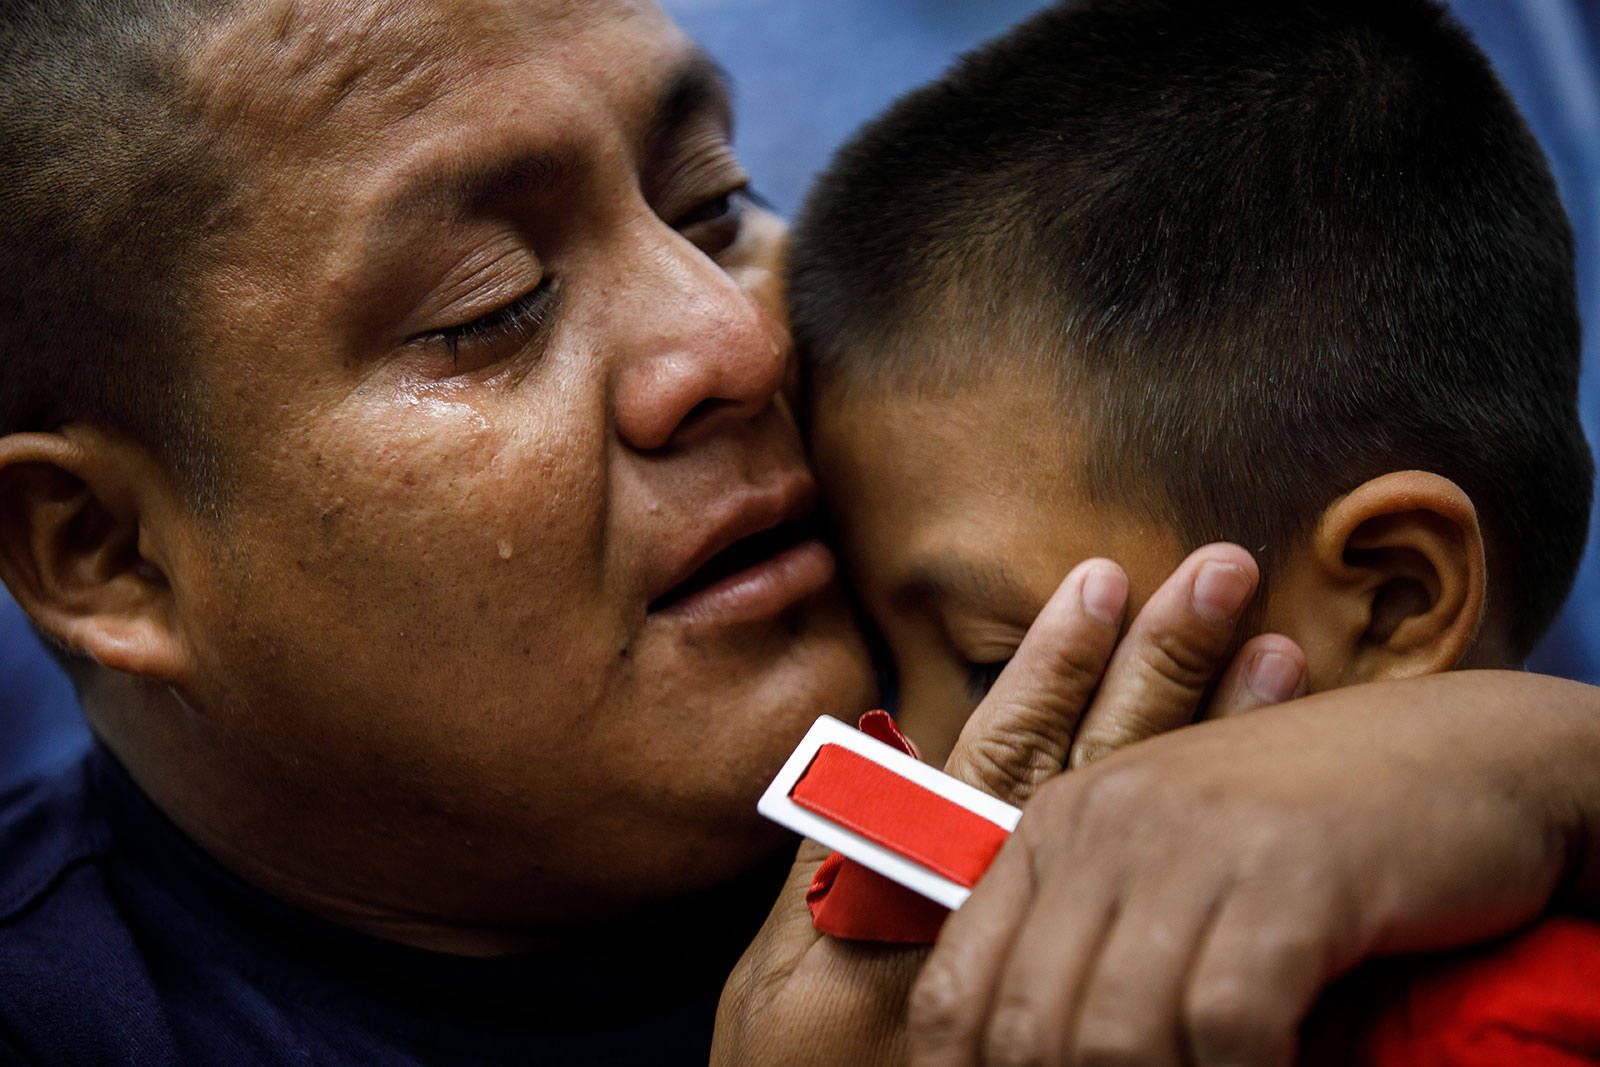 f430752f7b5 Immigrant family separations at the US border: A timeline - CNN.com